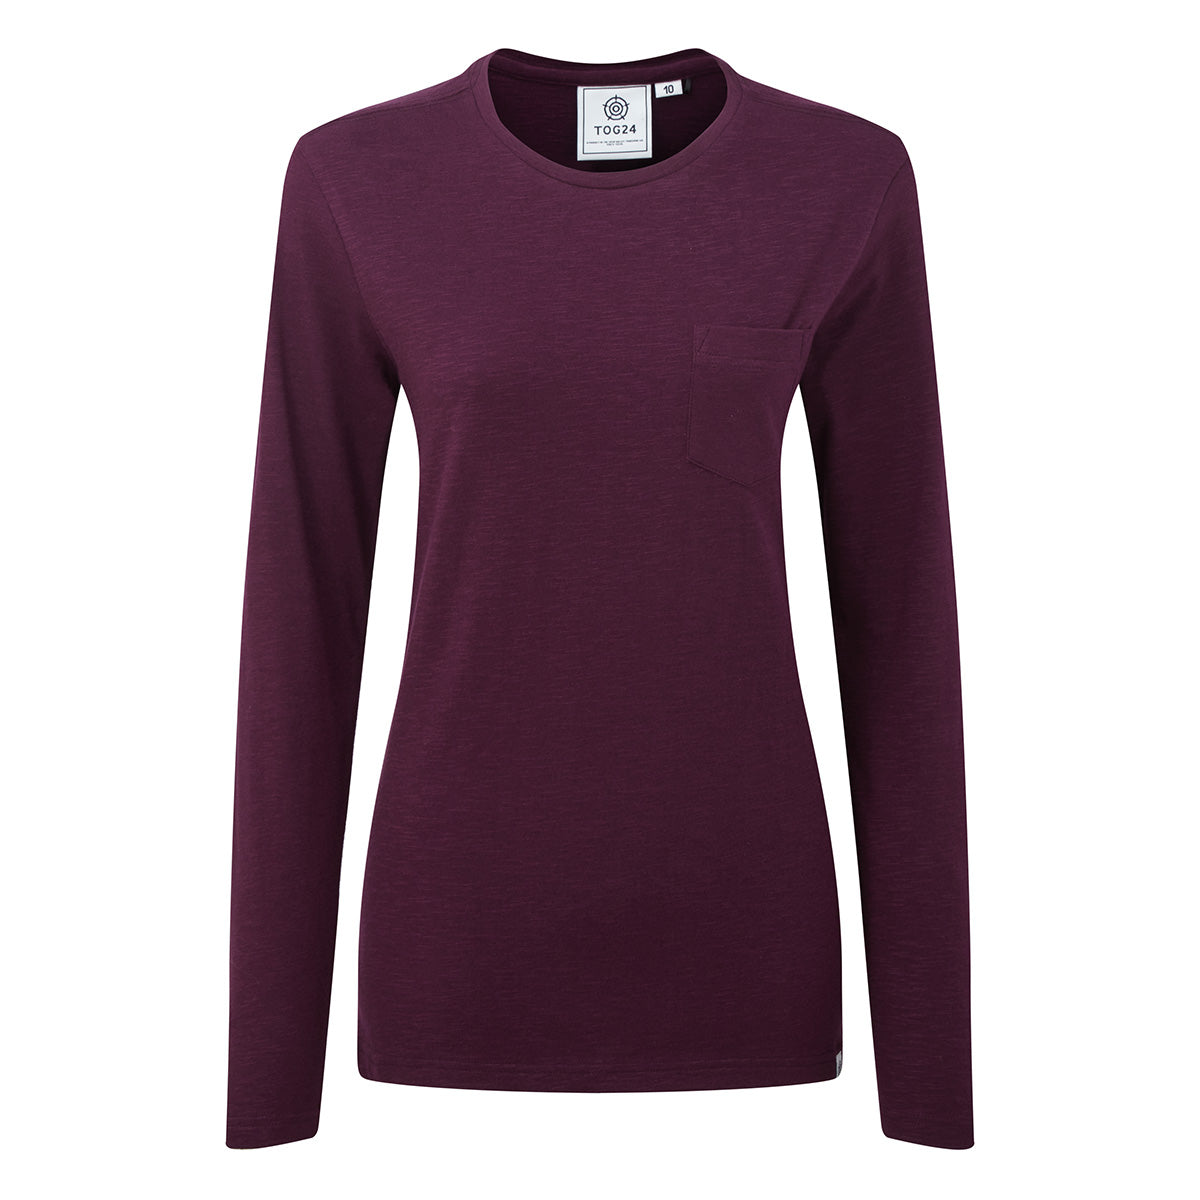 Askwith Womens Long Sleeve Pocket T-Shirt - Aubergine image 4